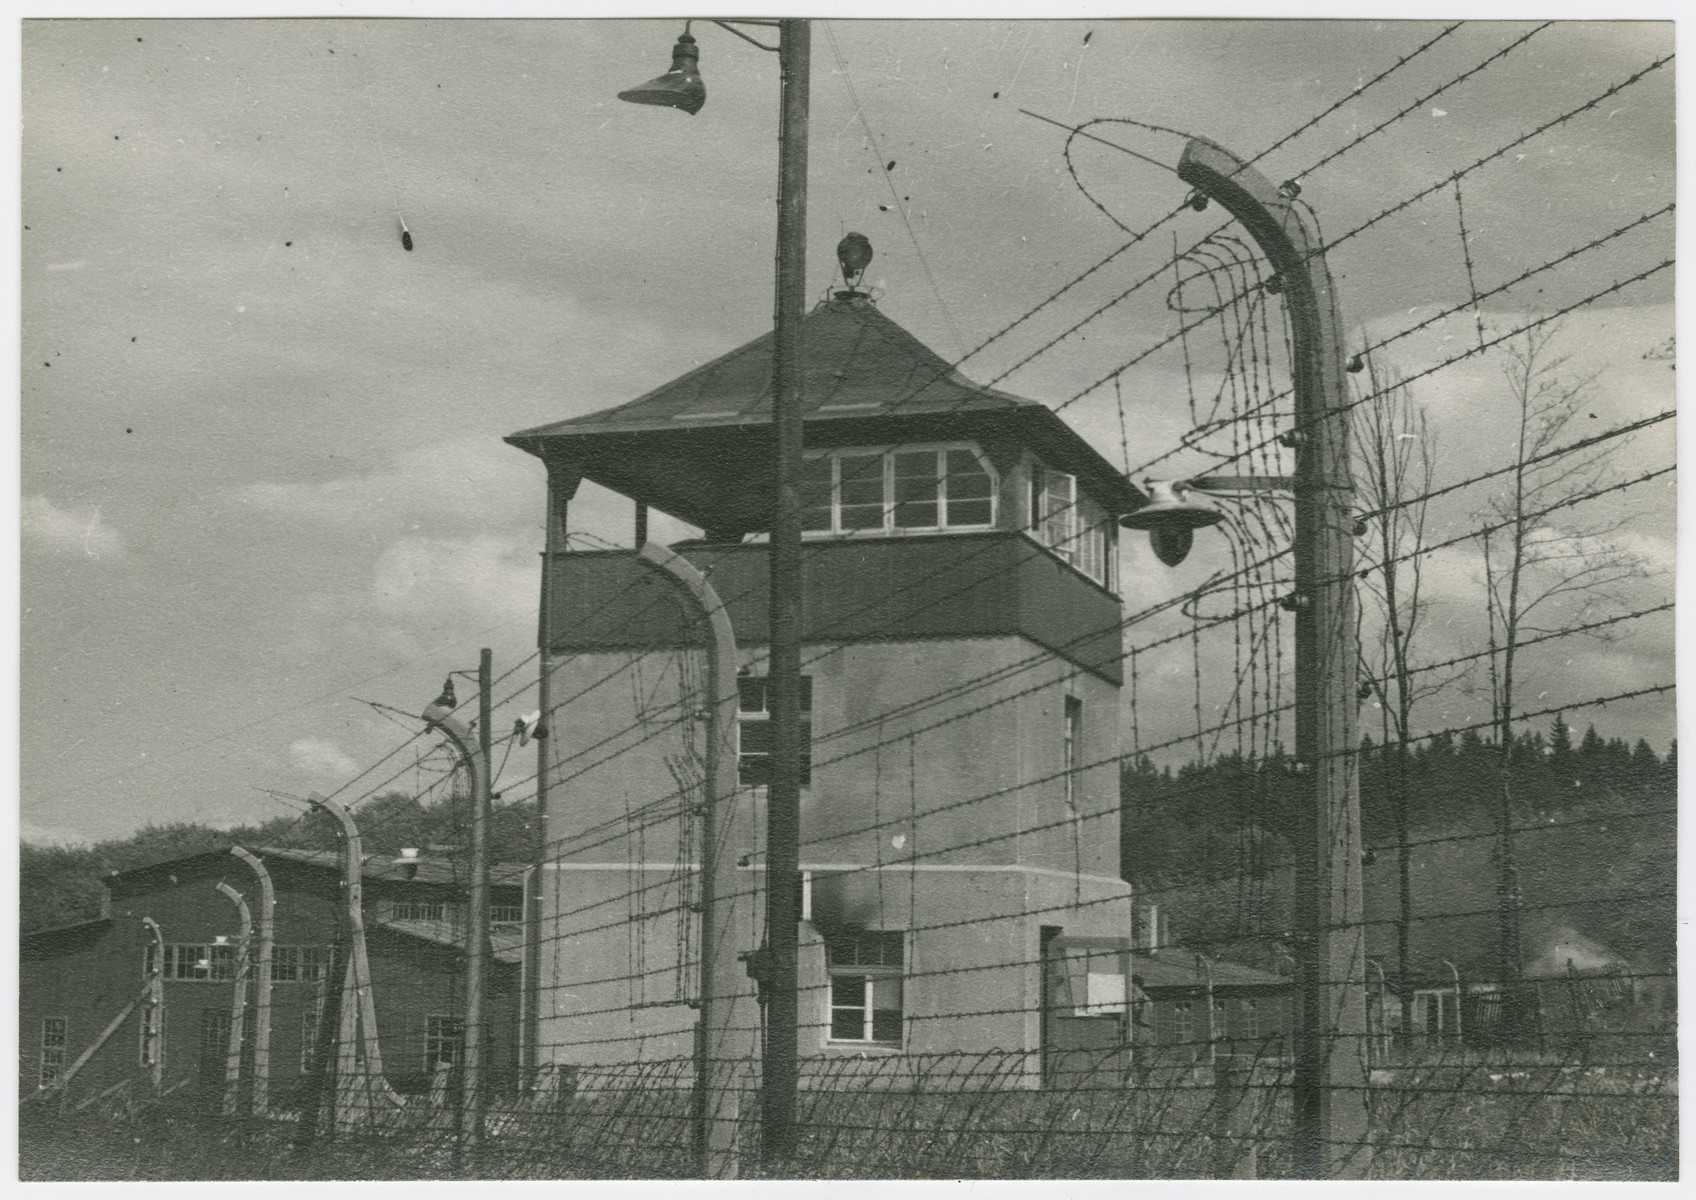 View of a watch tower and electrified fence in the Buchenwald concentration camp.